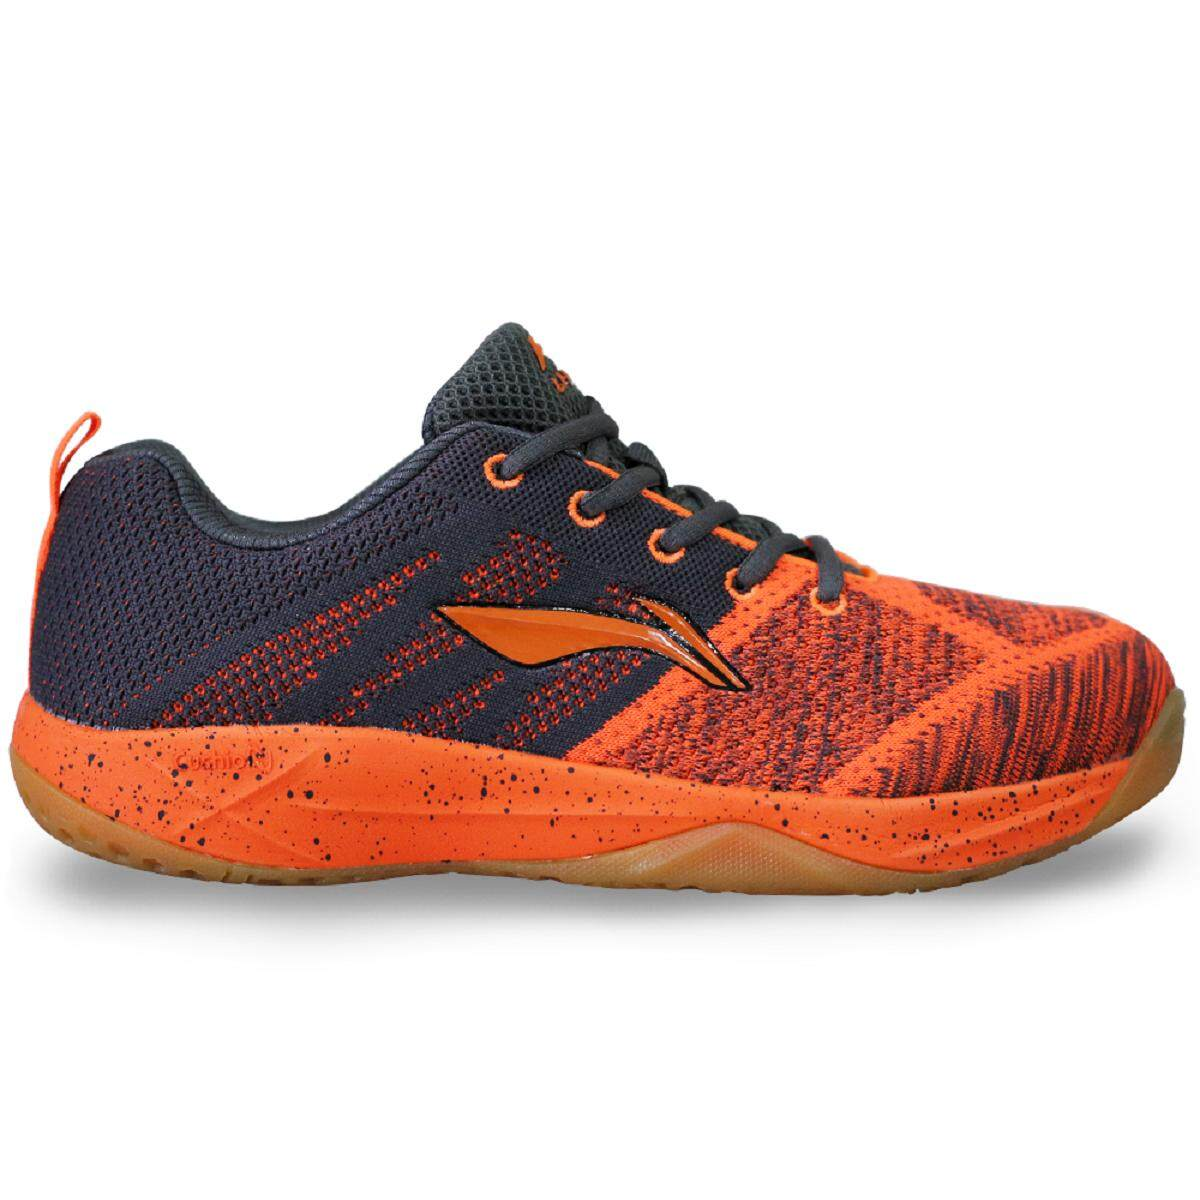 Li-Ning Badminton Shoes - Mars